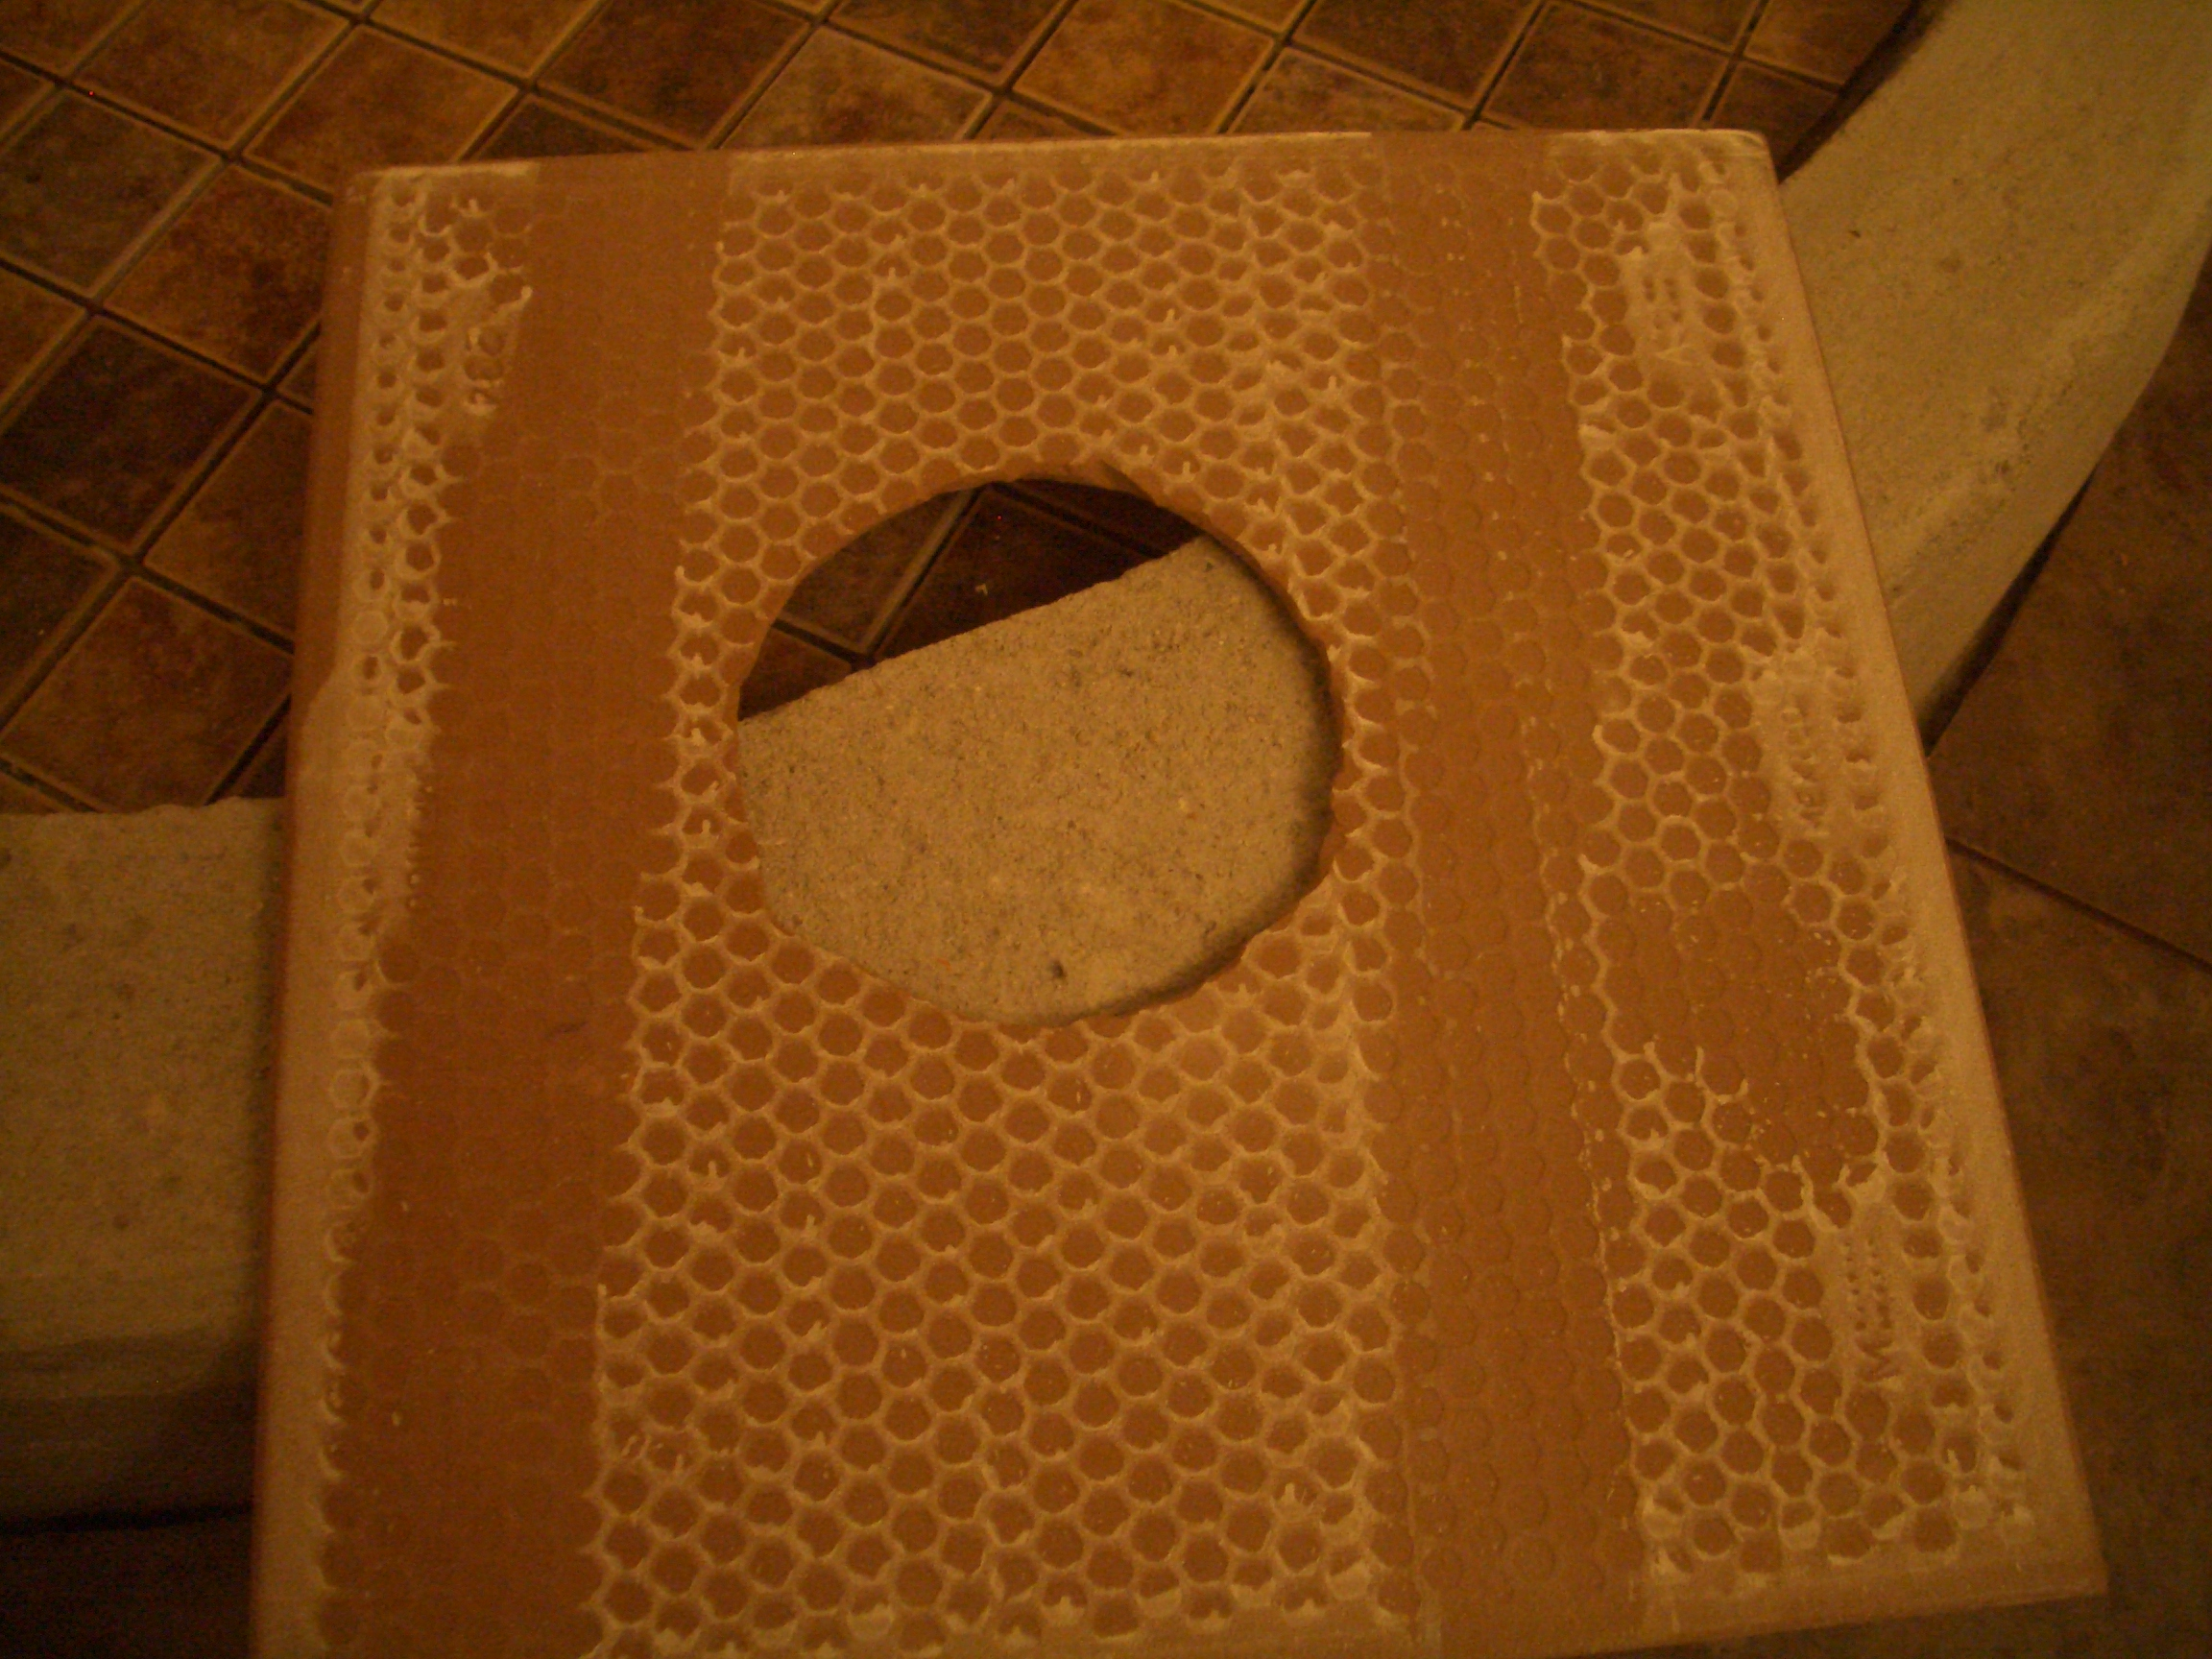 Waterproofing cutout holes for fixtures in shower wall tile back of tile with holes cut out dailygadgetfo Images